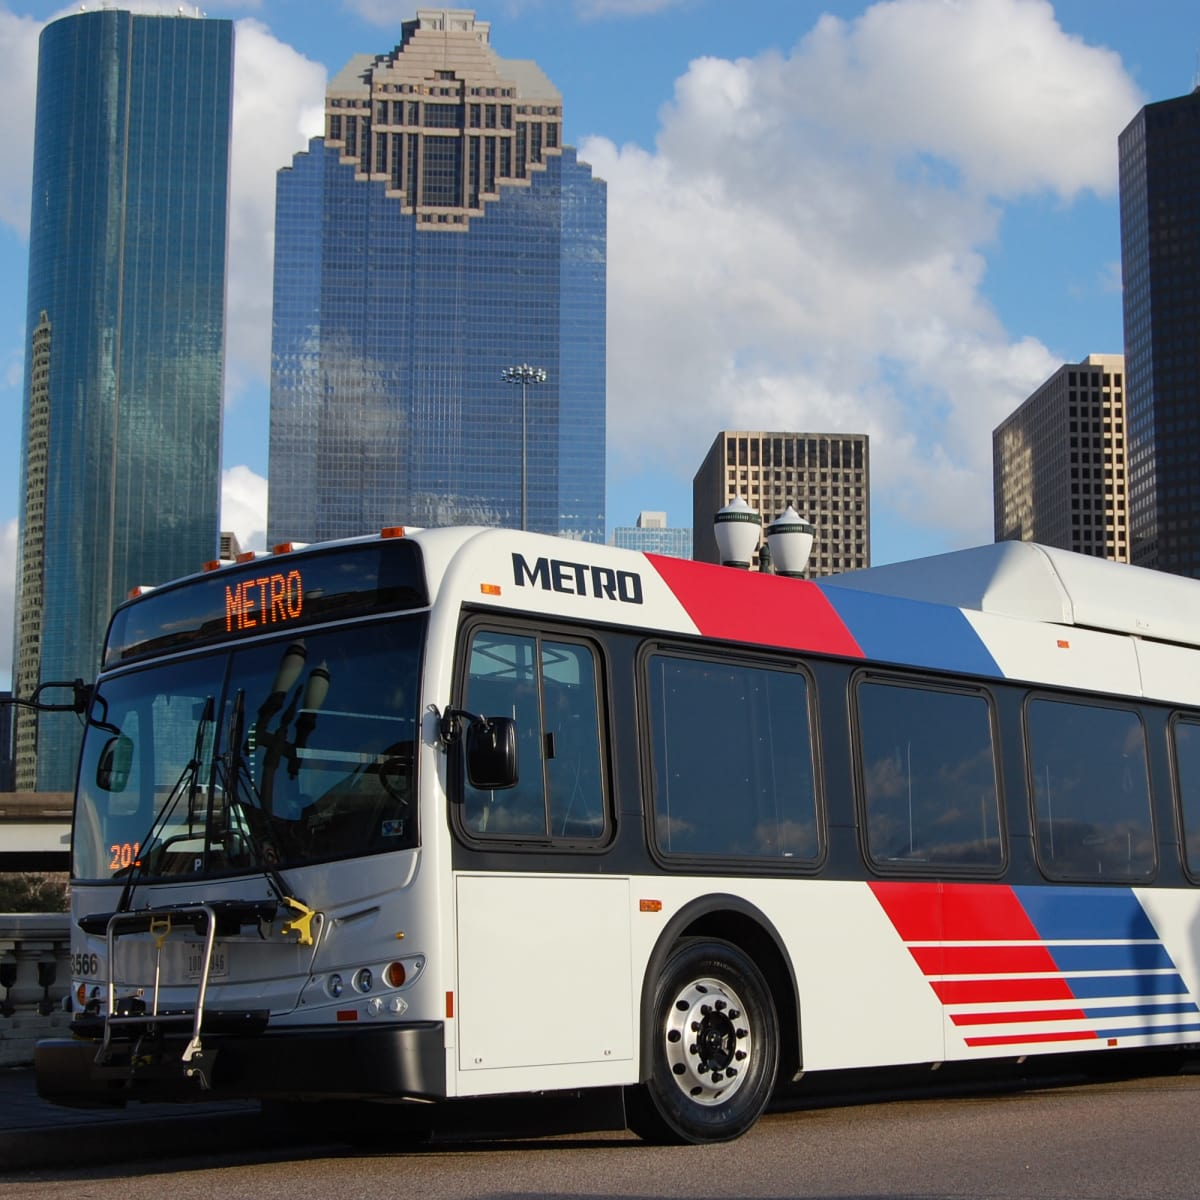 METRO bus Houston skyline CROP